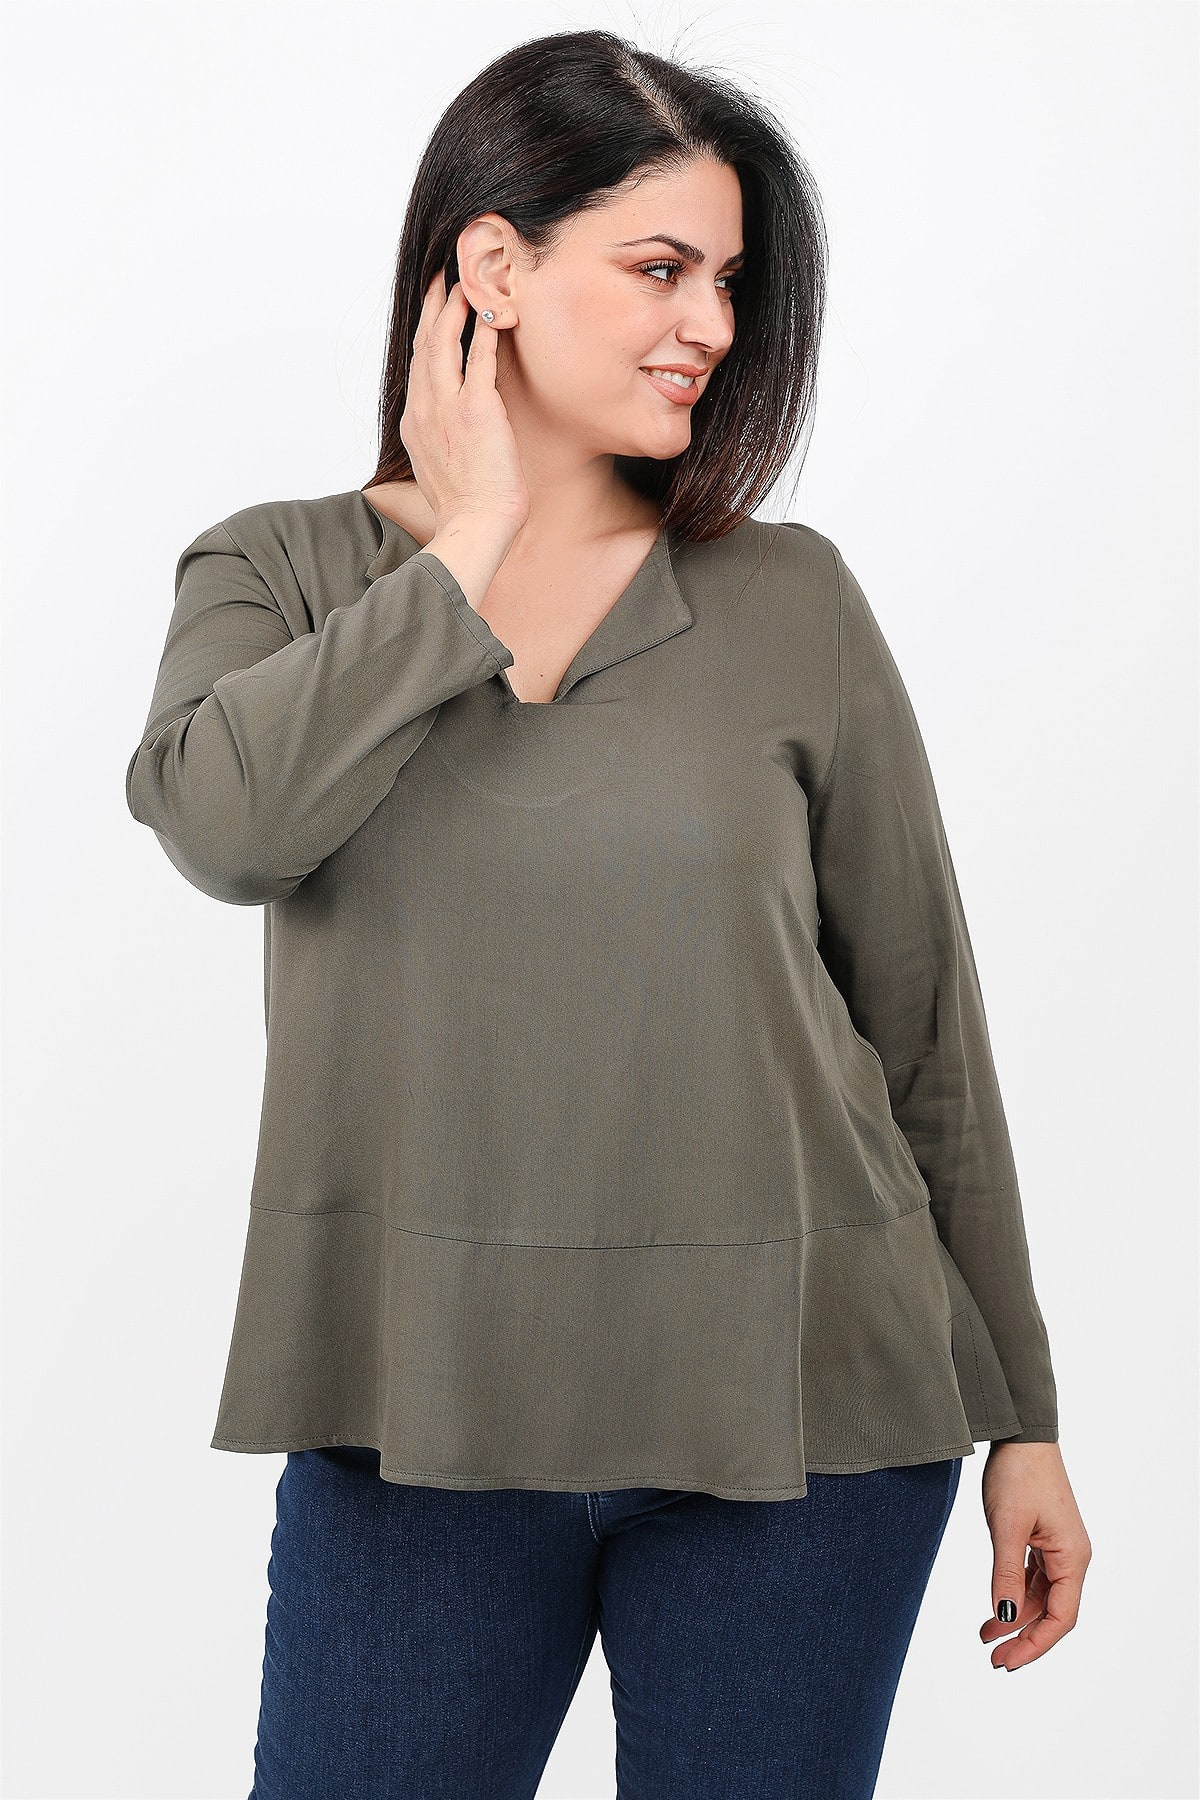 Blouse with skater hem and colar neck